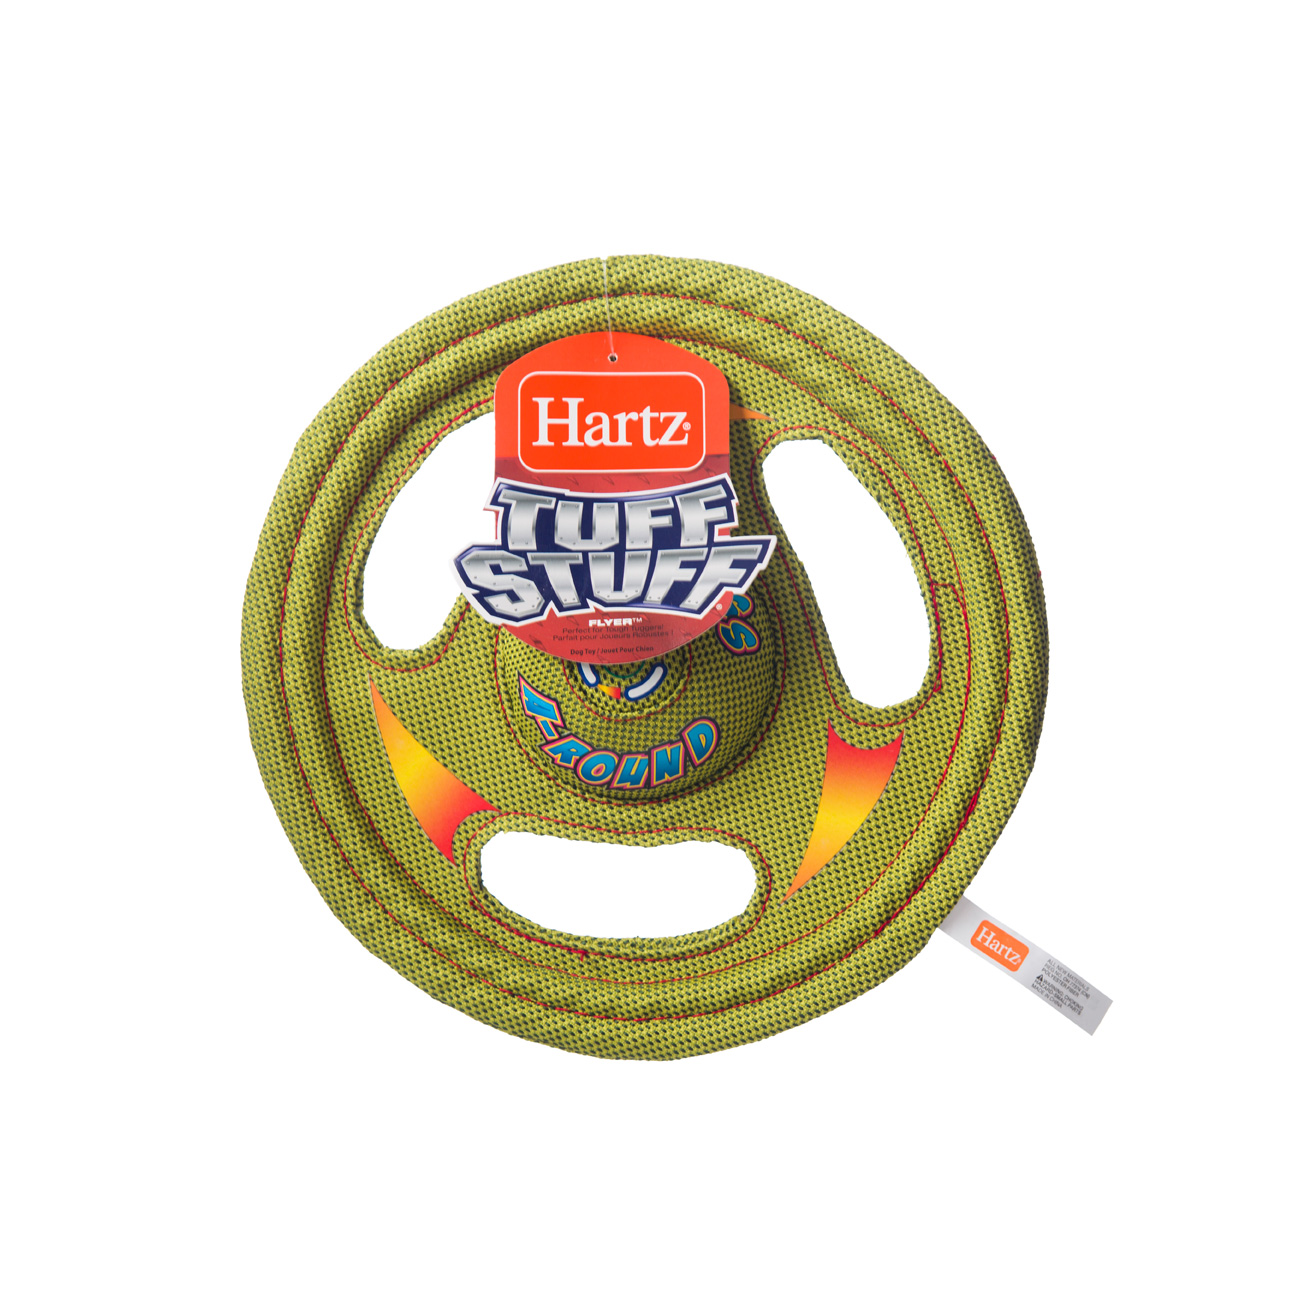 Green wheel shaped squeaky toy for dogs, Hartz SKU 3270000766